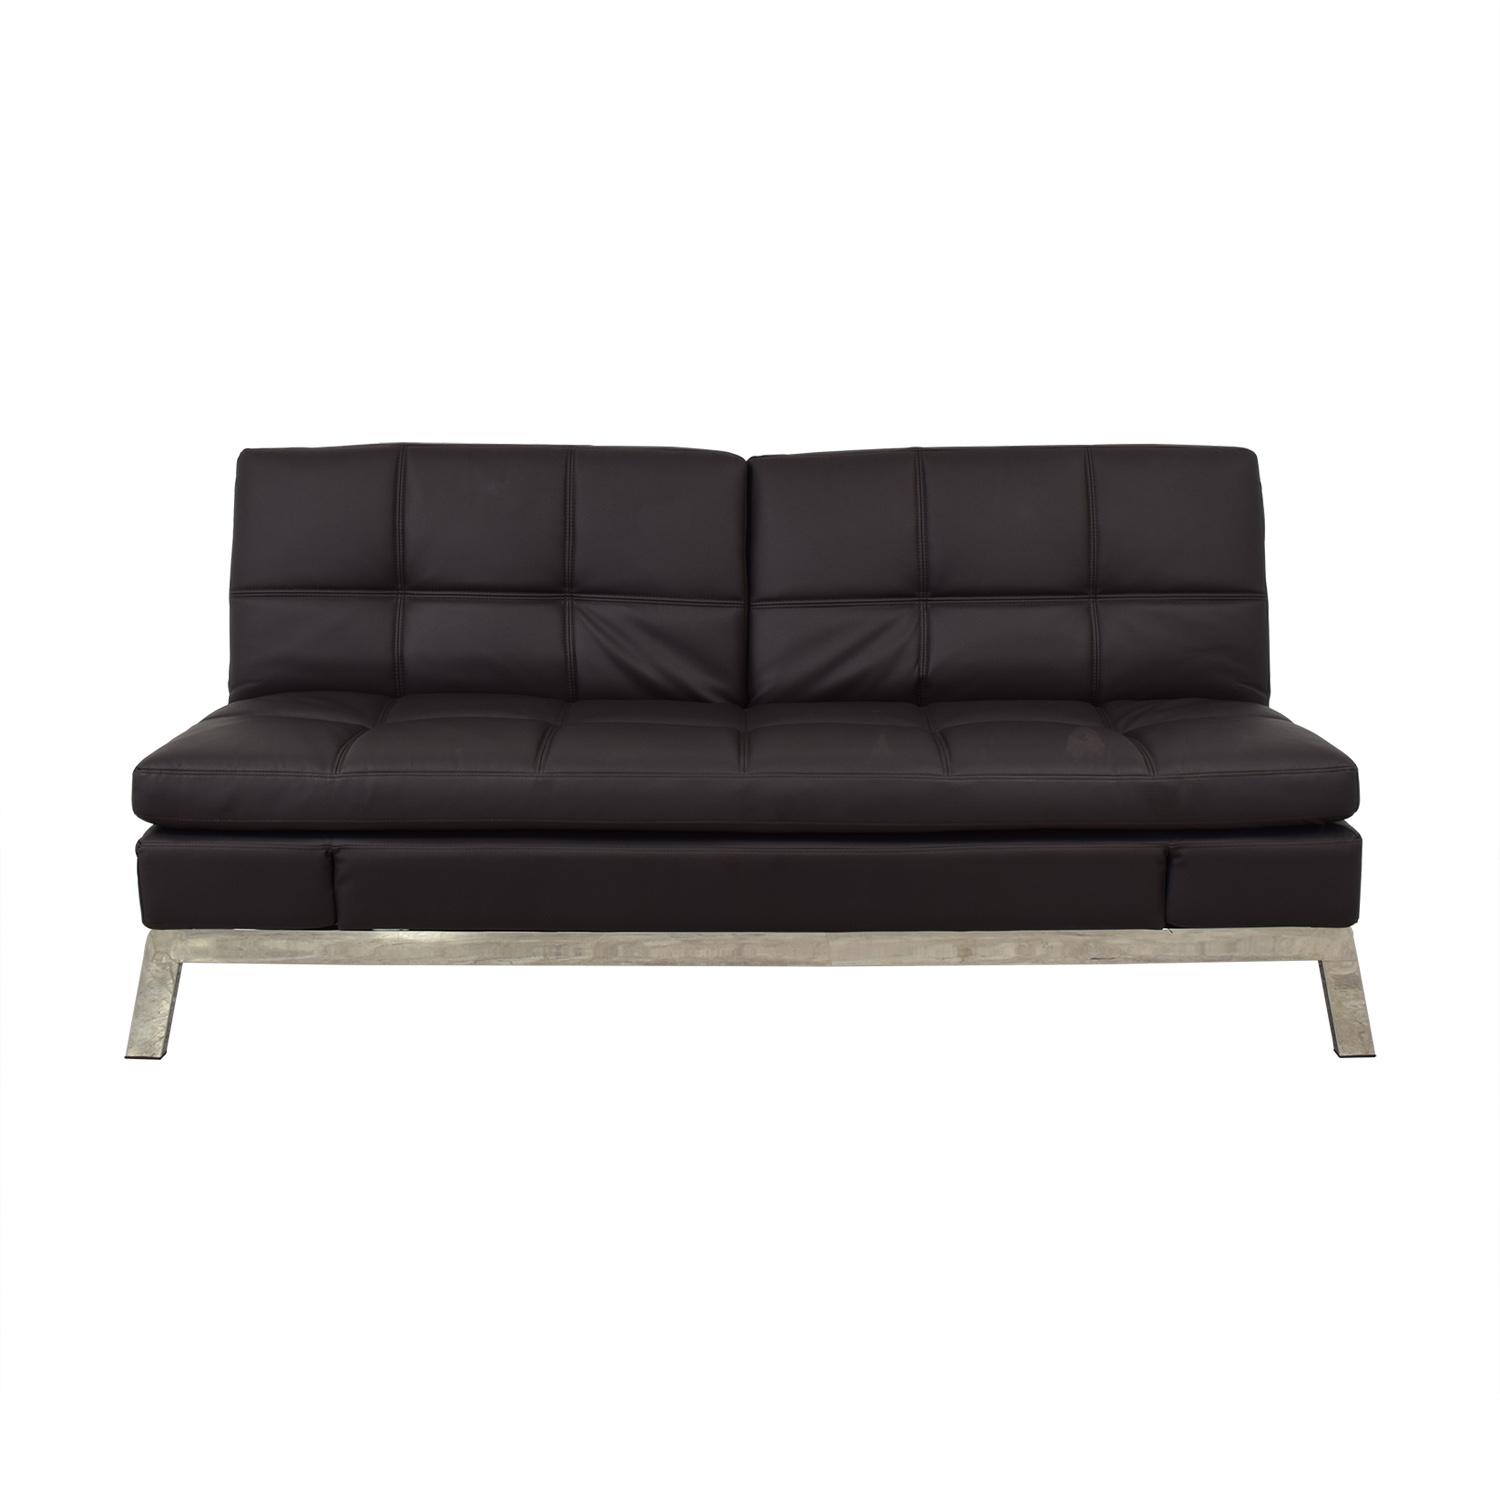 Coddle Coddle Gjemeni Convertible Leather Sleeper Sofa dimensions